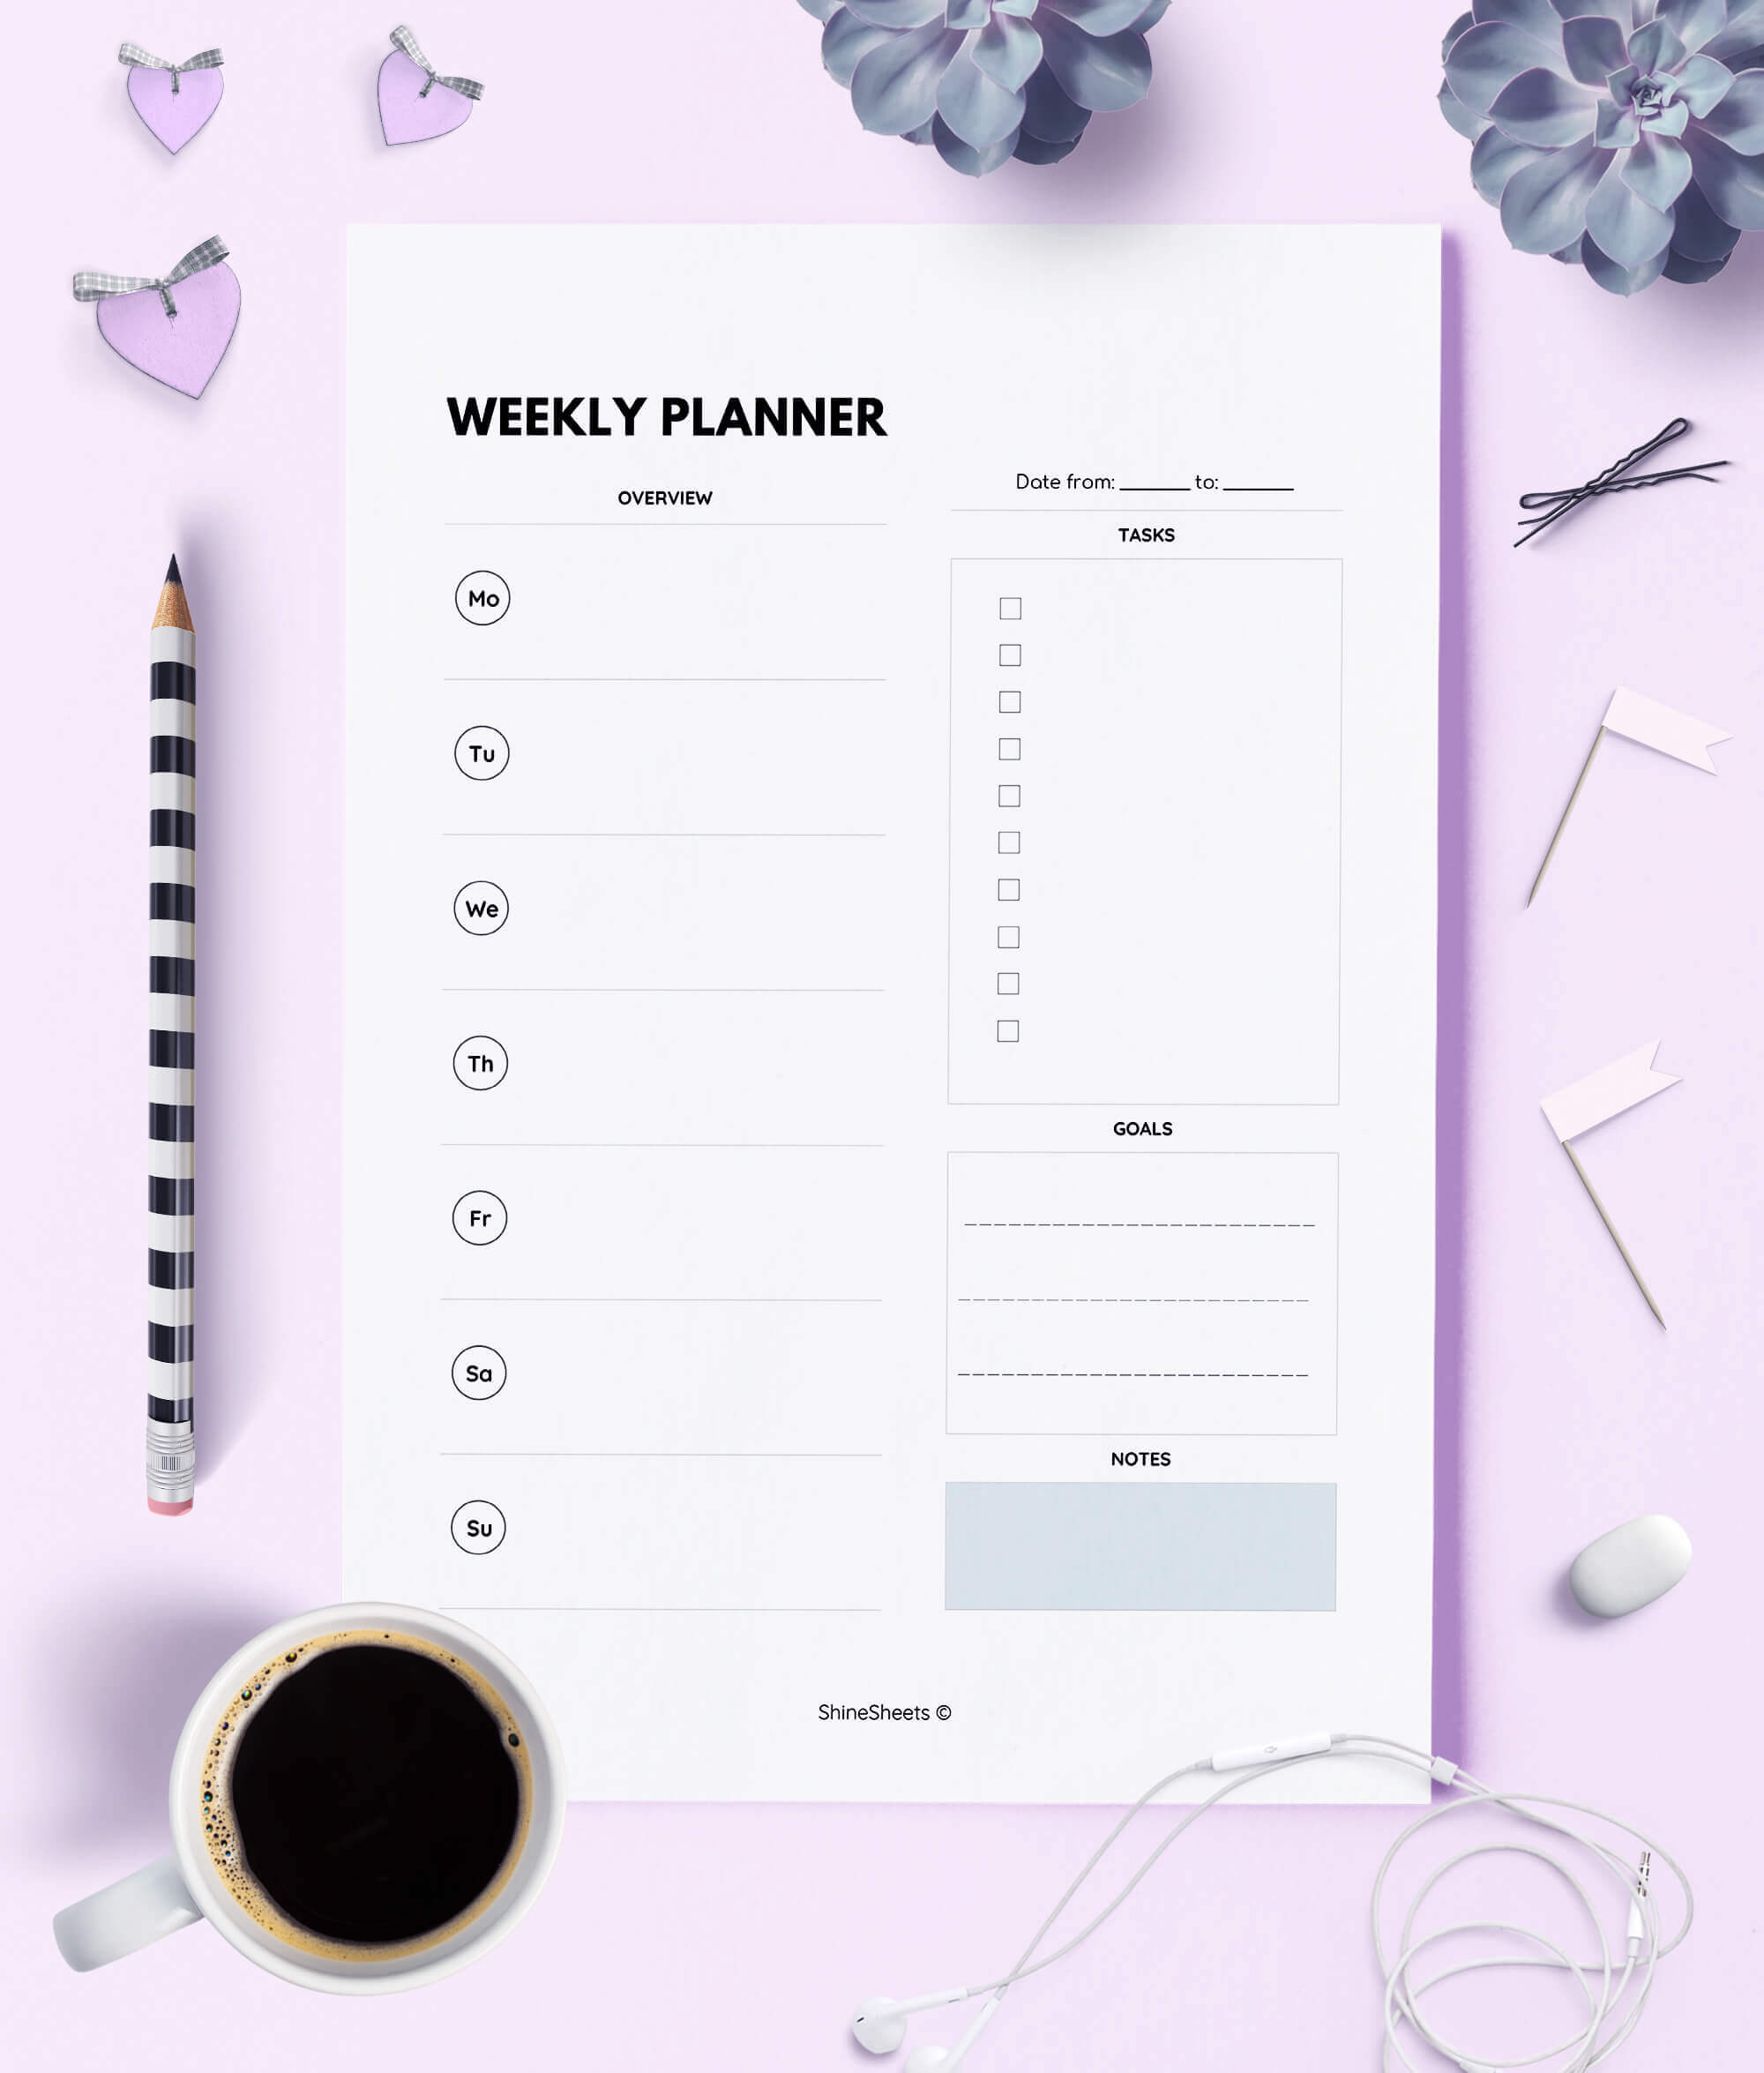 image about Week Planner Printable called Weekly Planner Printable / WO1P